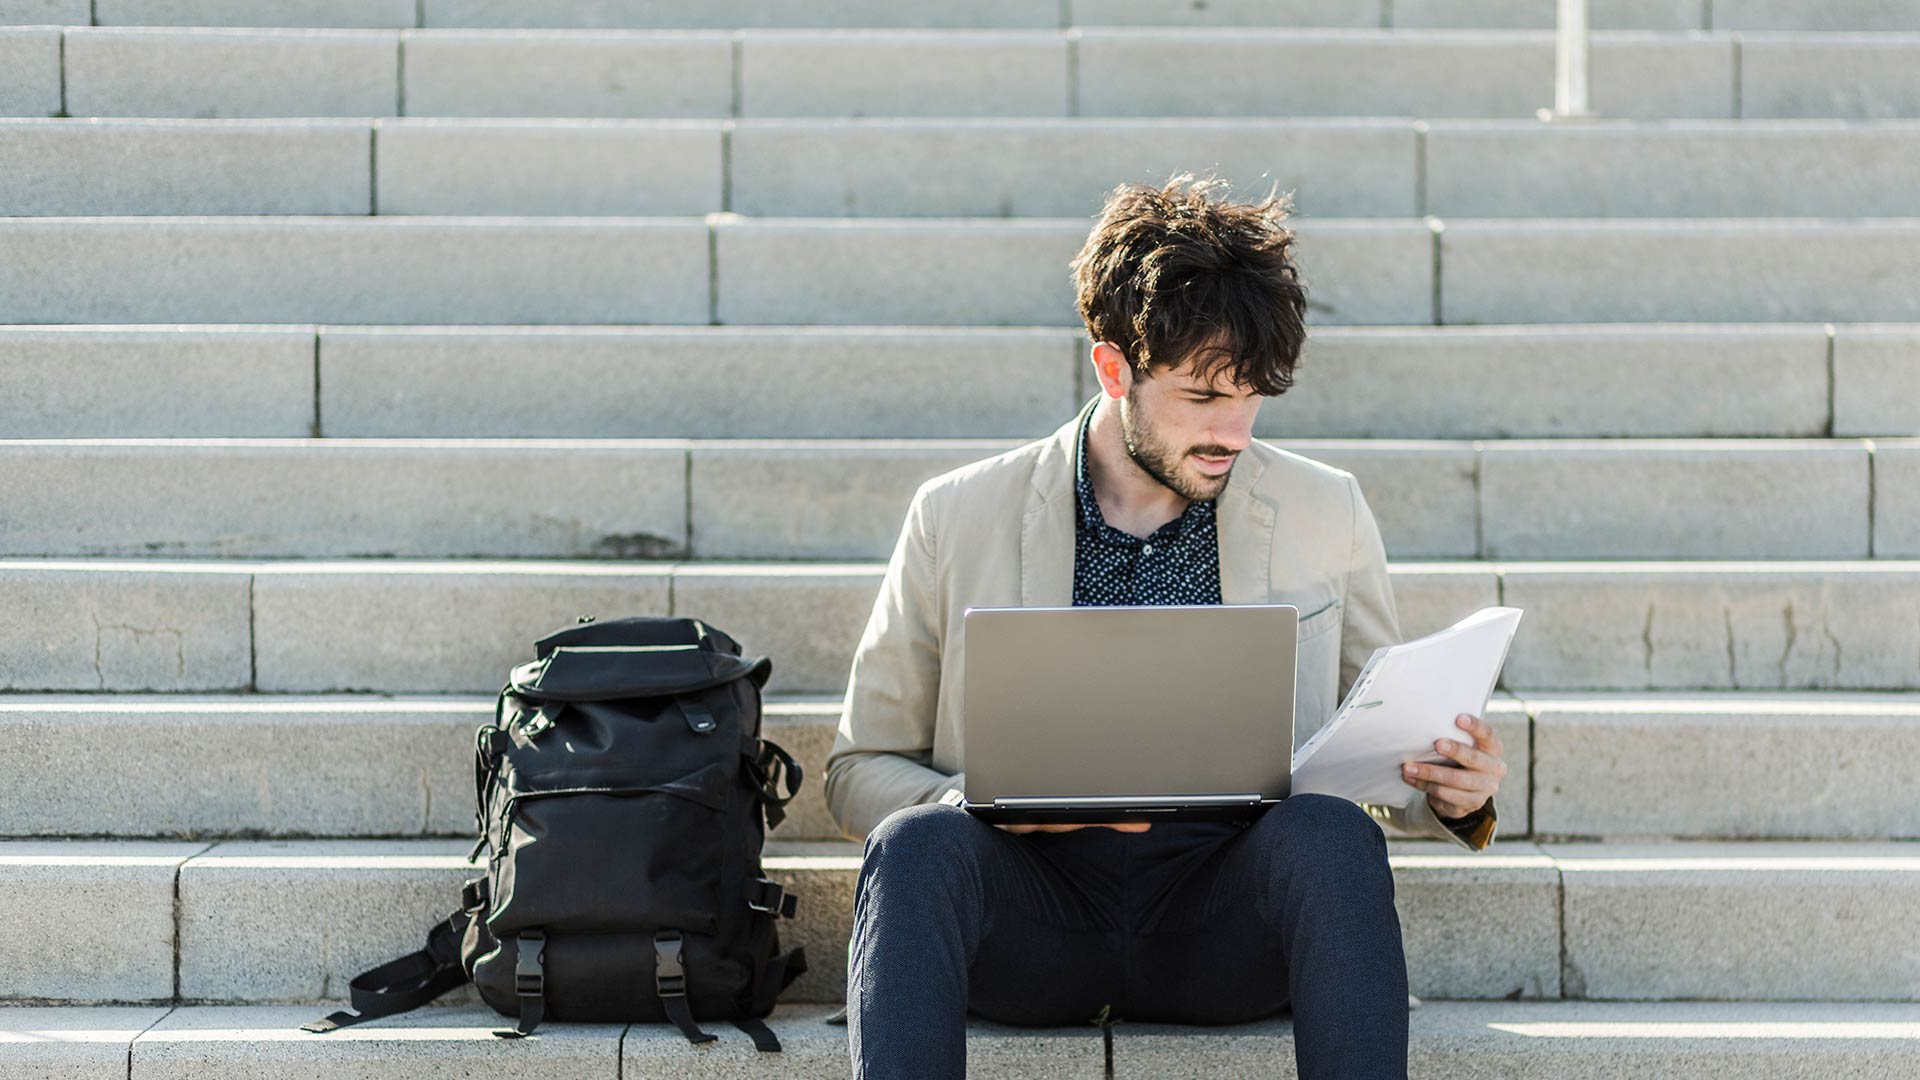 Man studying on outdoor stairs with a laptop and his backpack beside him.